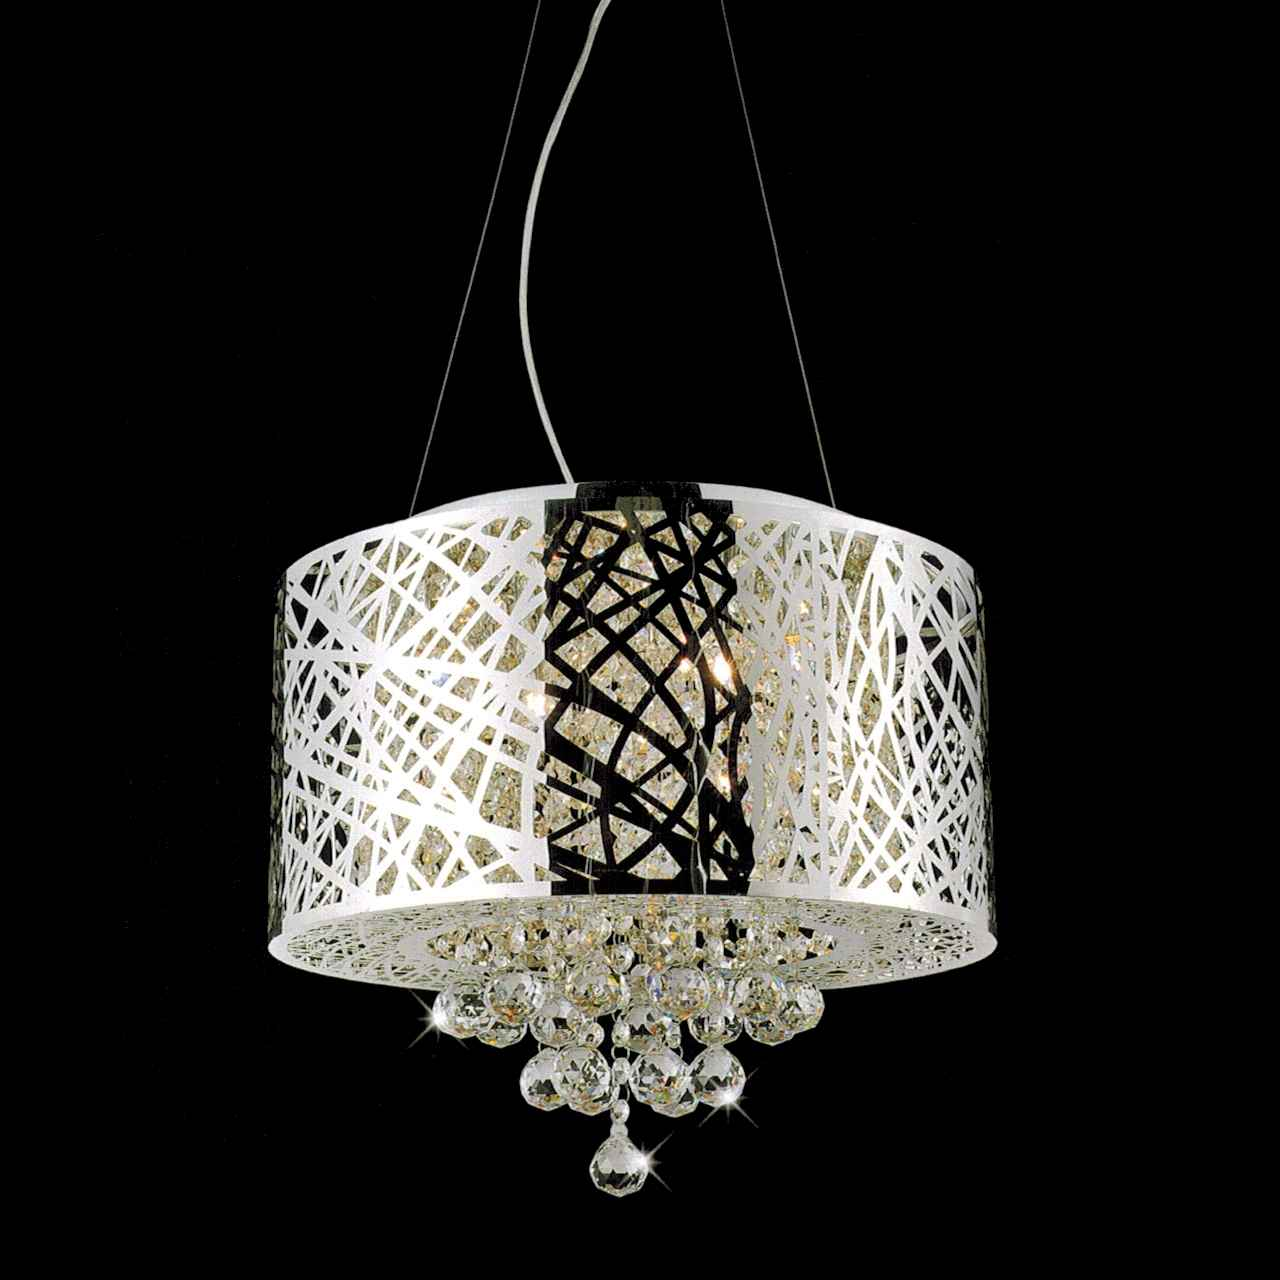 most rustic favored breathtaking lights fixtures amazon with maria ceiling lowes bedroom theresa iron size chandelier amazing bronze modern light outdoor aesthetic finish lighting bao crystal pink full in amusing outstanding pendant drop round carving entertain of silver com mini kitchen classy chandeliers